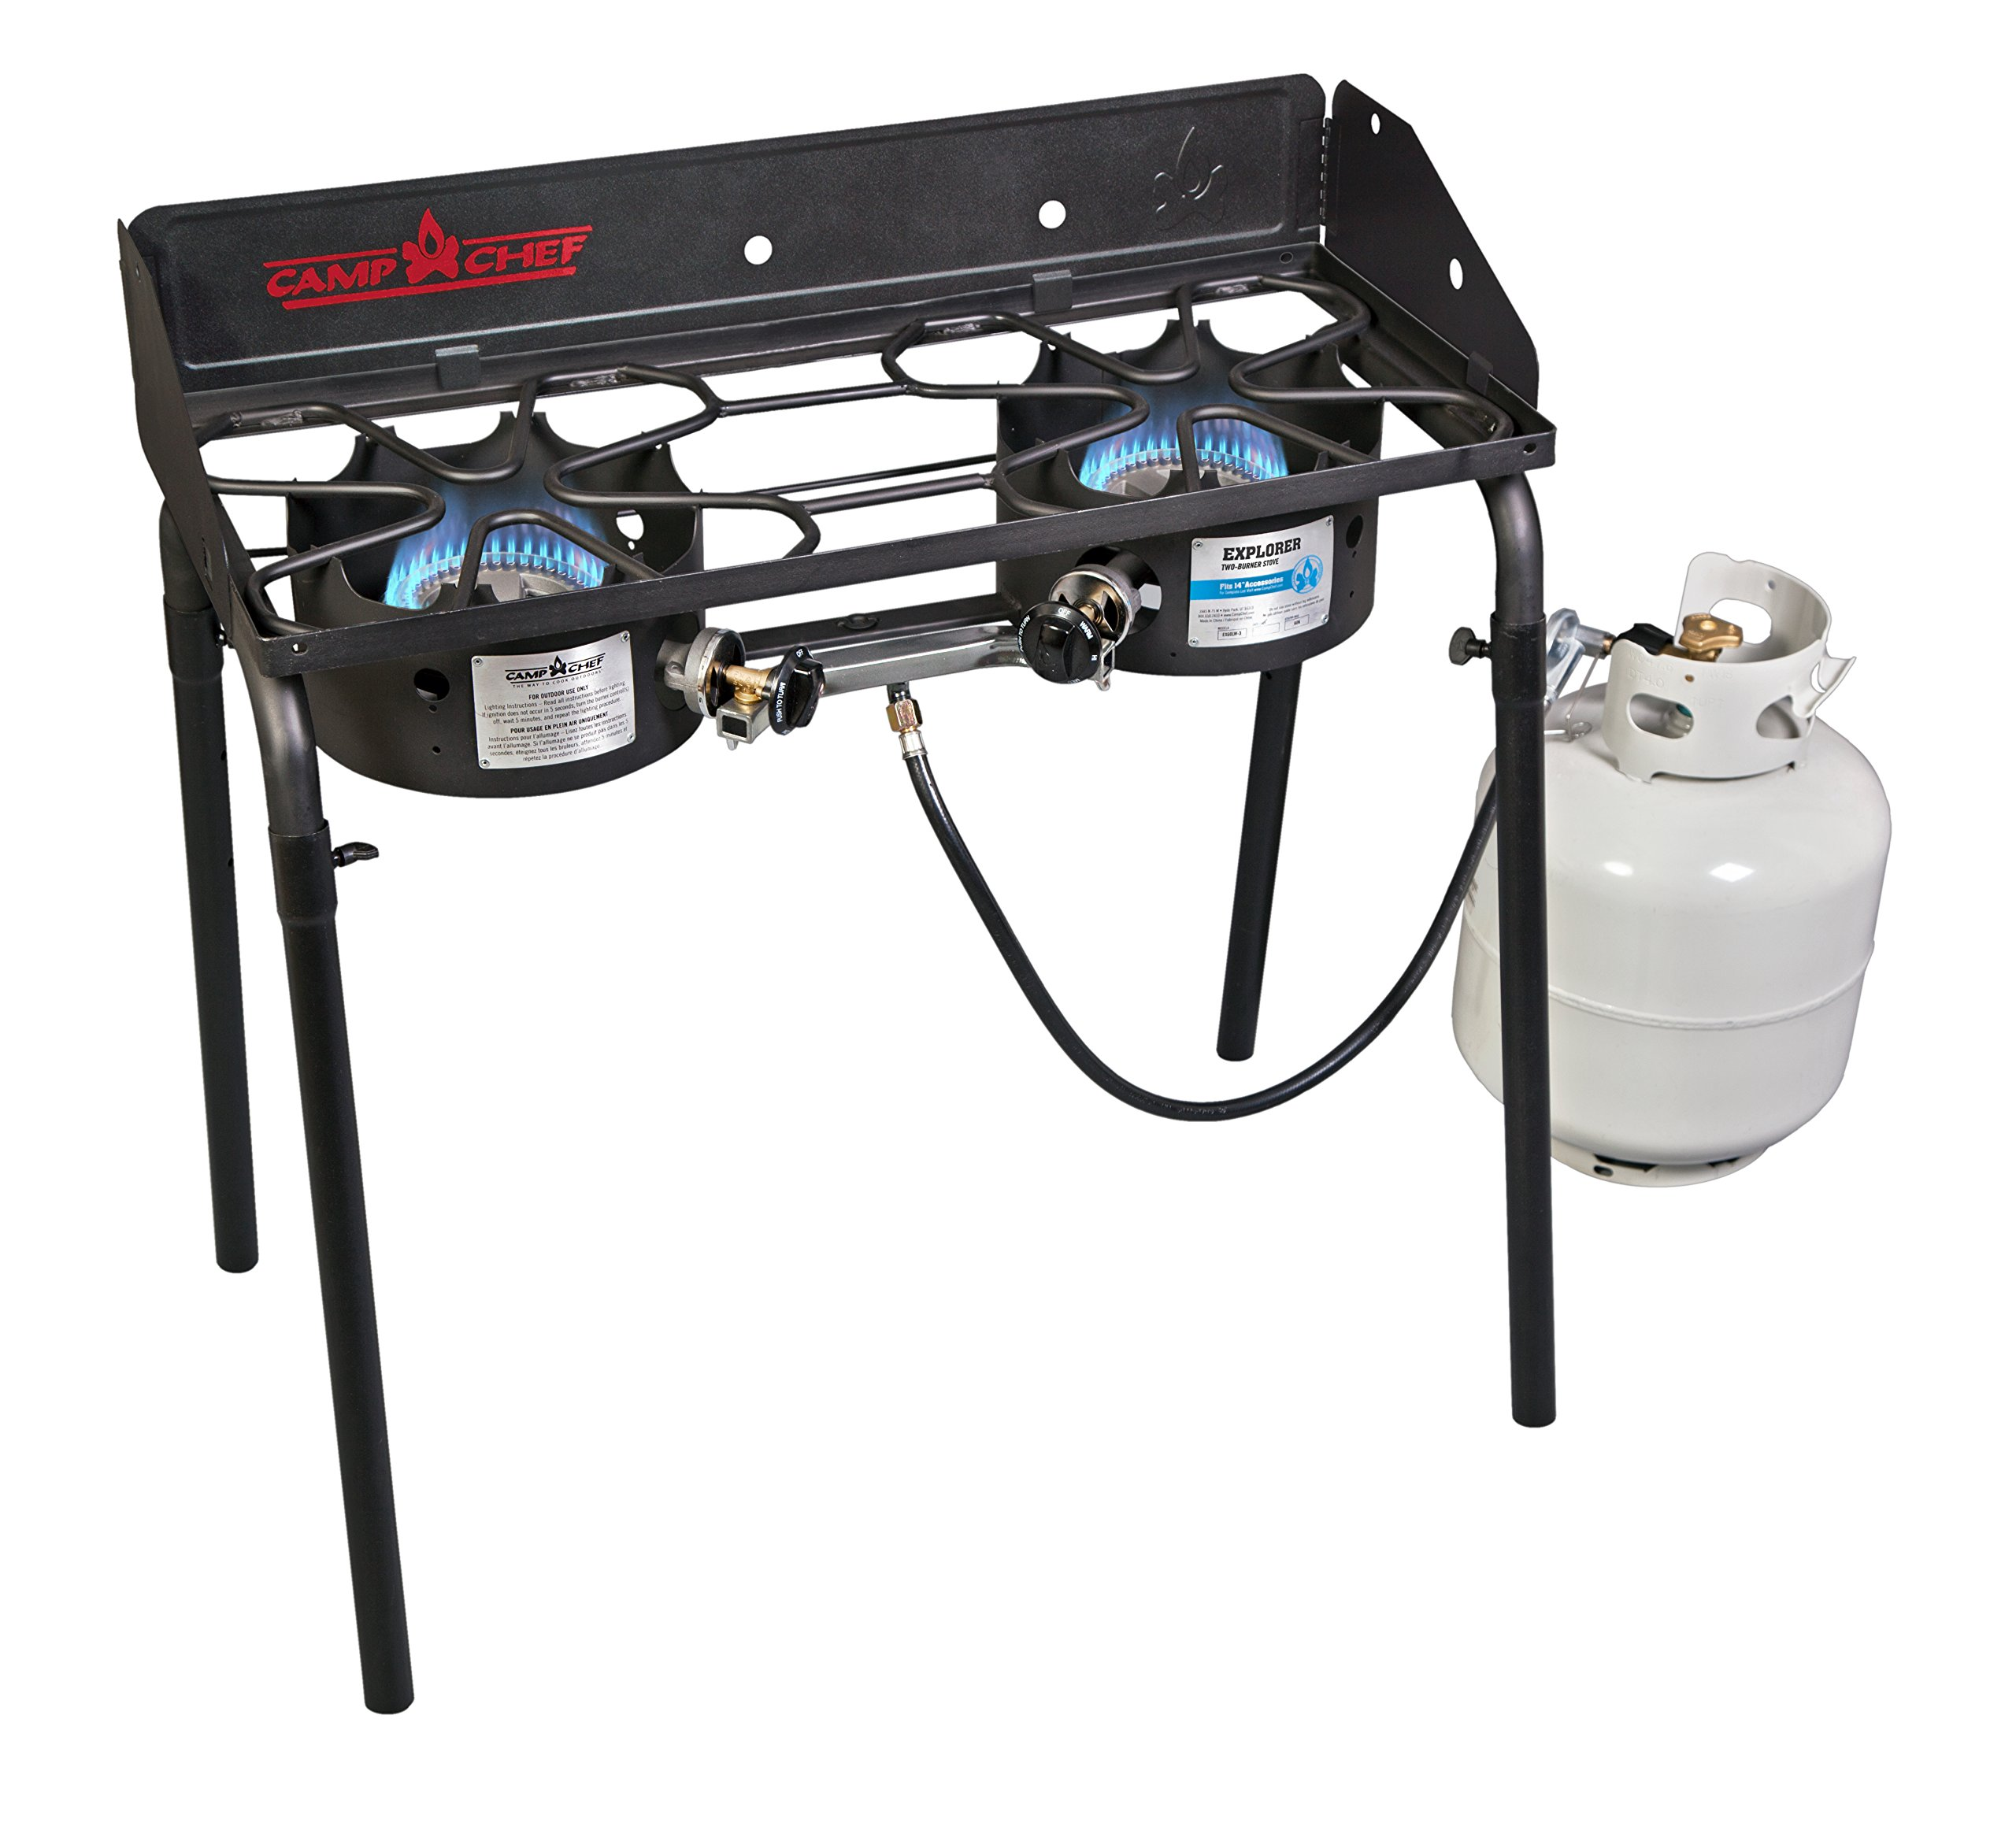 Camp Chef Explorer Double Burner Stove by Camp Chef